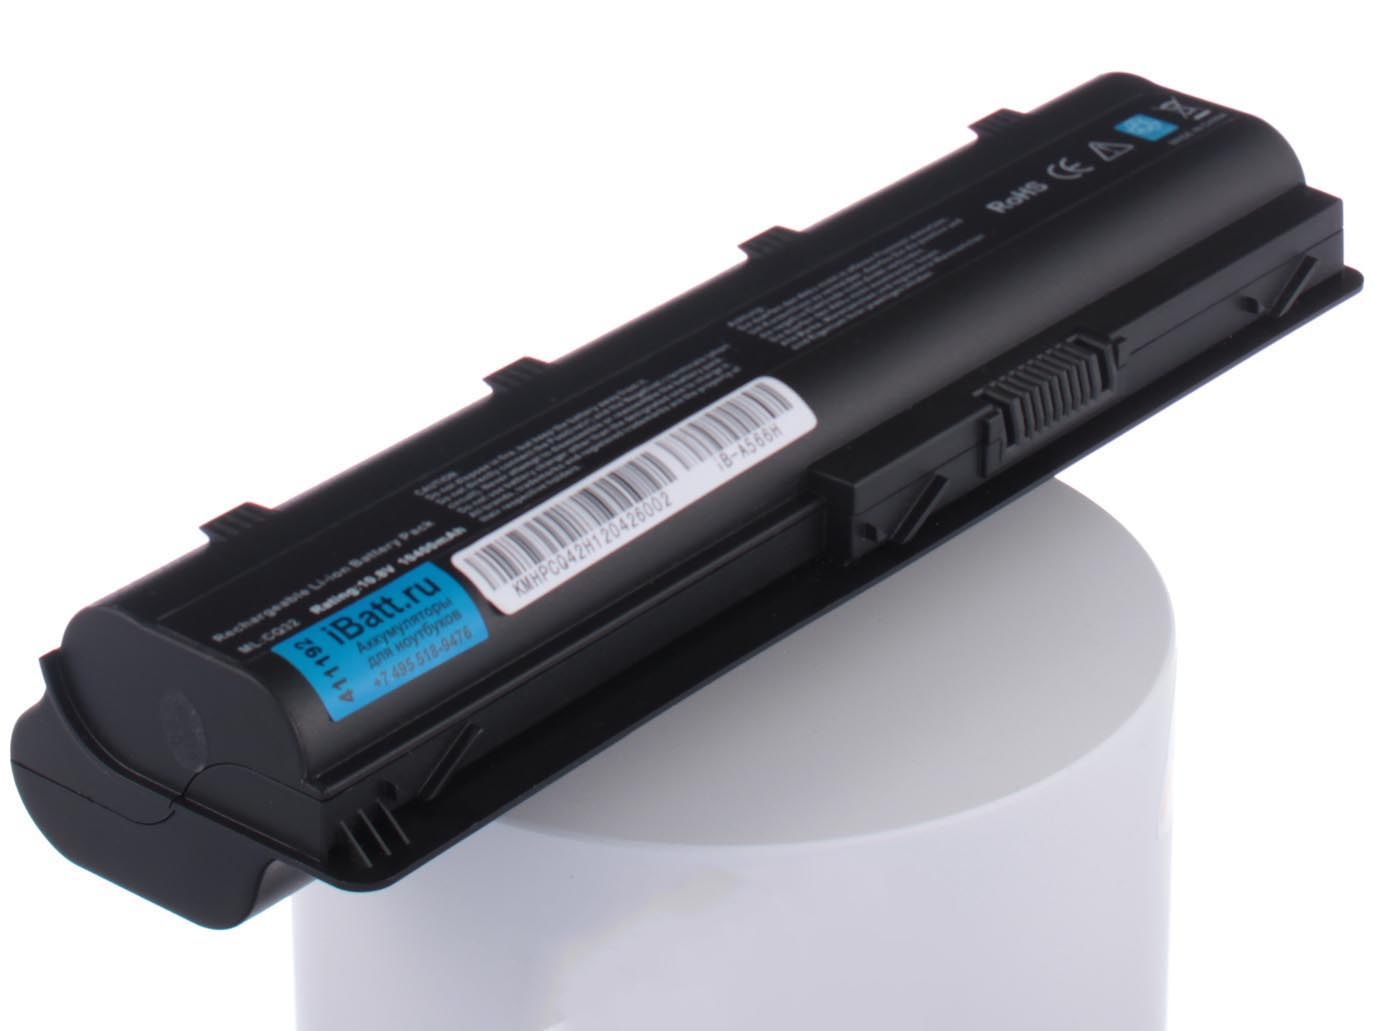 Аккумулятор для ноутбука iBatt для HP-Compaq Pavilion g7-1075dx, Pavilion g7-1310sr, Pavilion g7-1312nr, Pavilion g7-1338dx, Pavilion g7-1372sr, Pavilion g7-2022us, Pavilion g7-2028sr, Pavilion g7-2113er, Pavilion g7-2202er 650199 001 for hp pavilion g7 g4 laptop motherboard hm65 ddr3 free shipping 100